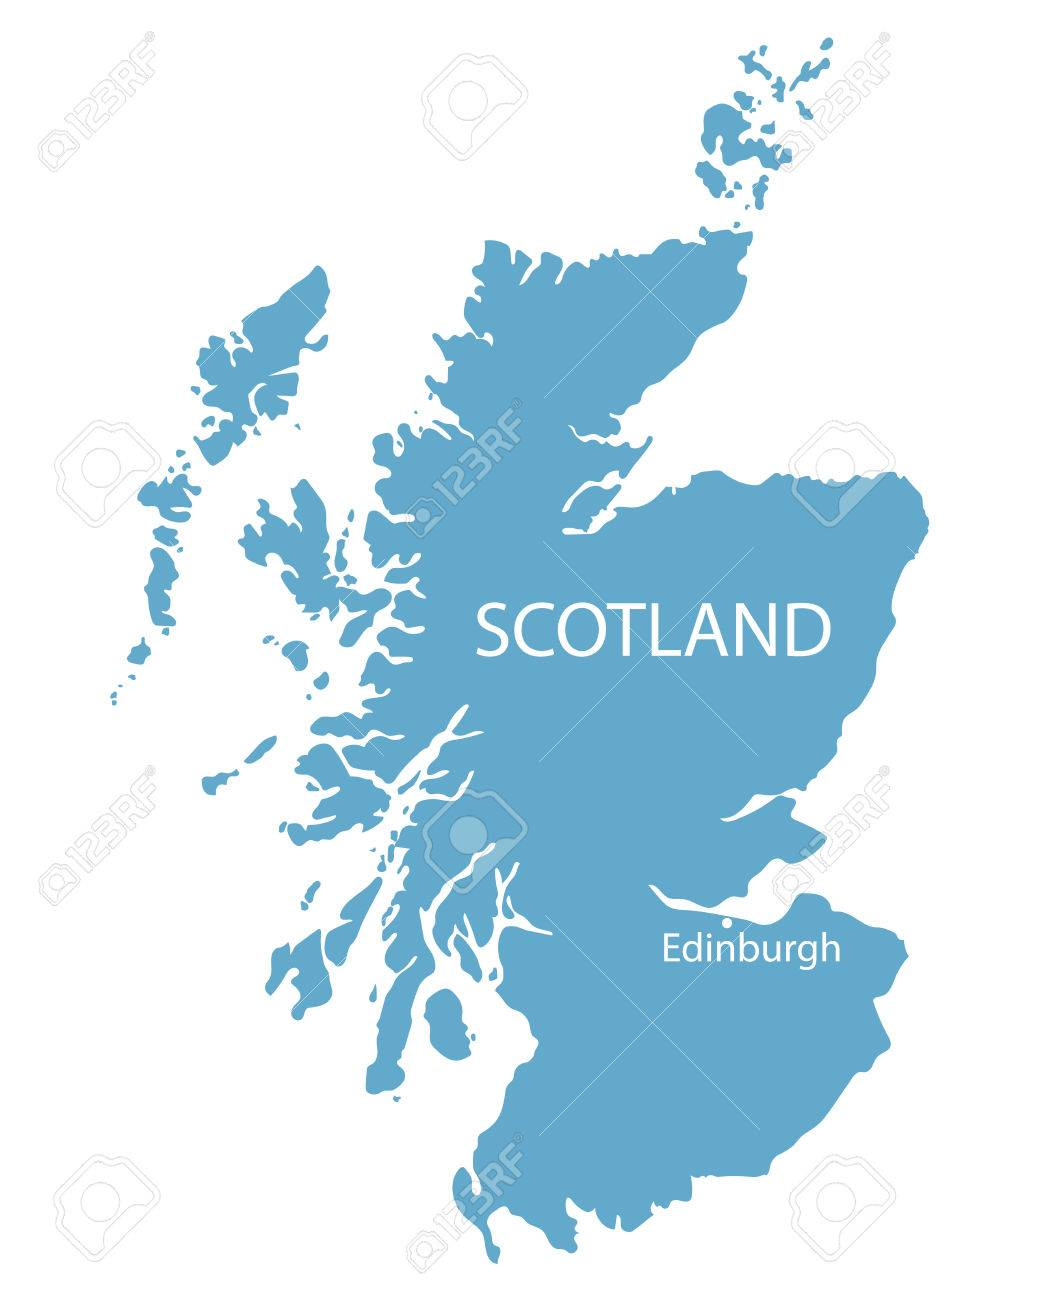 Edinburgh Scotland Map Blue Map Of Scotland With Indication Of Edinburgh Royalty Free  Edinburgh Scotland Map